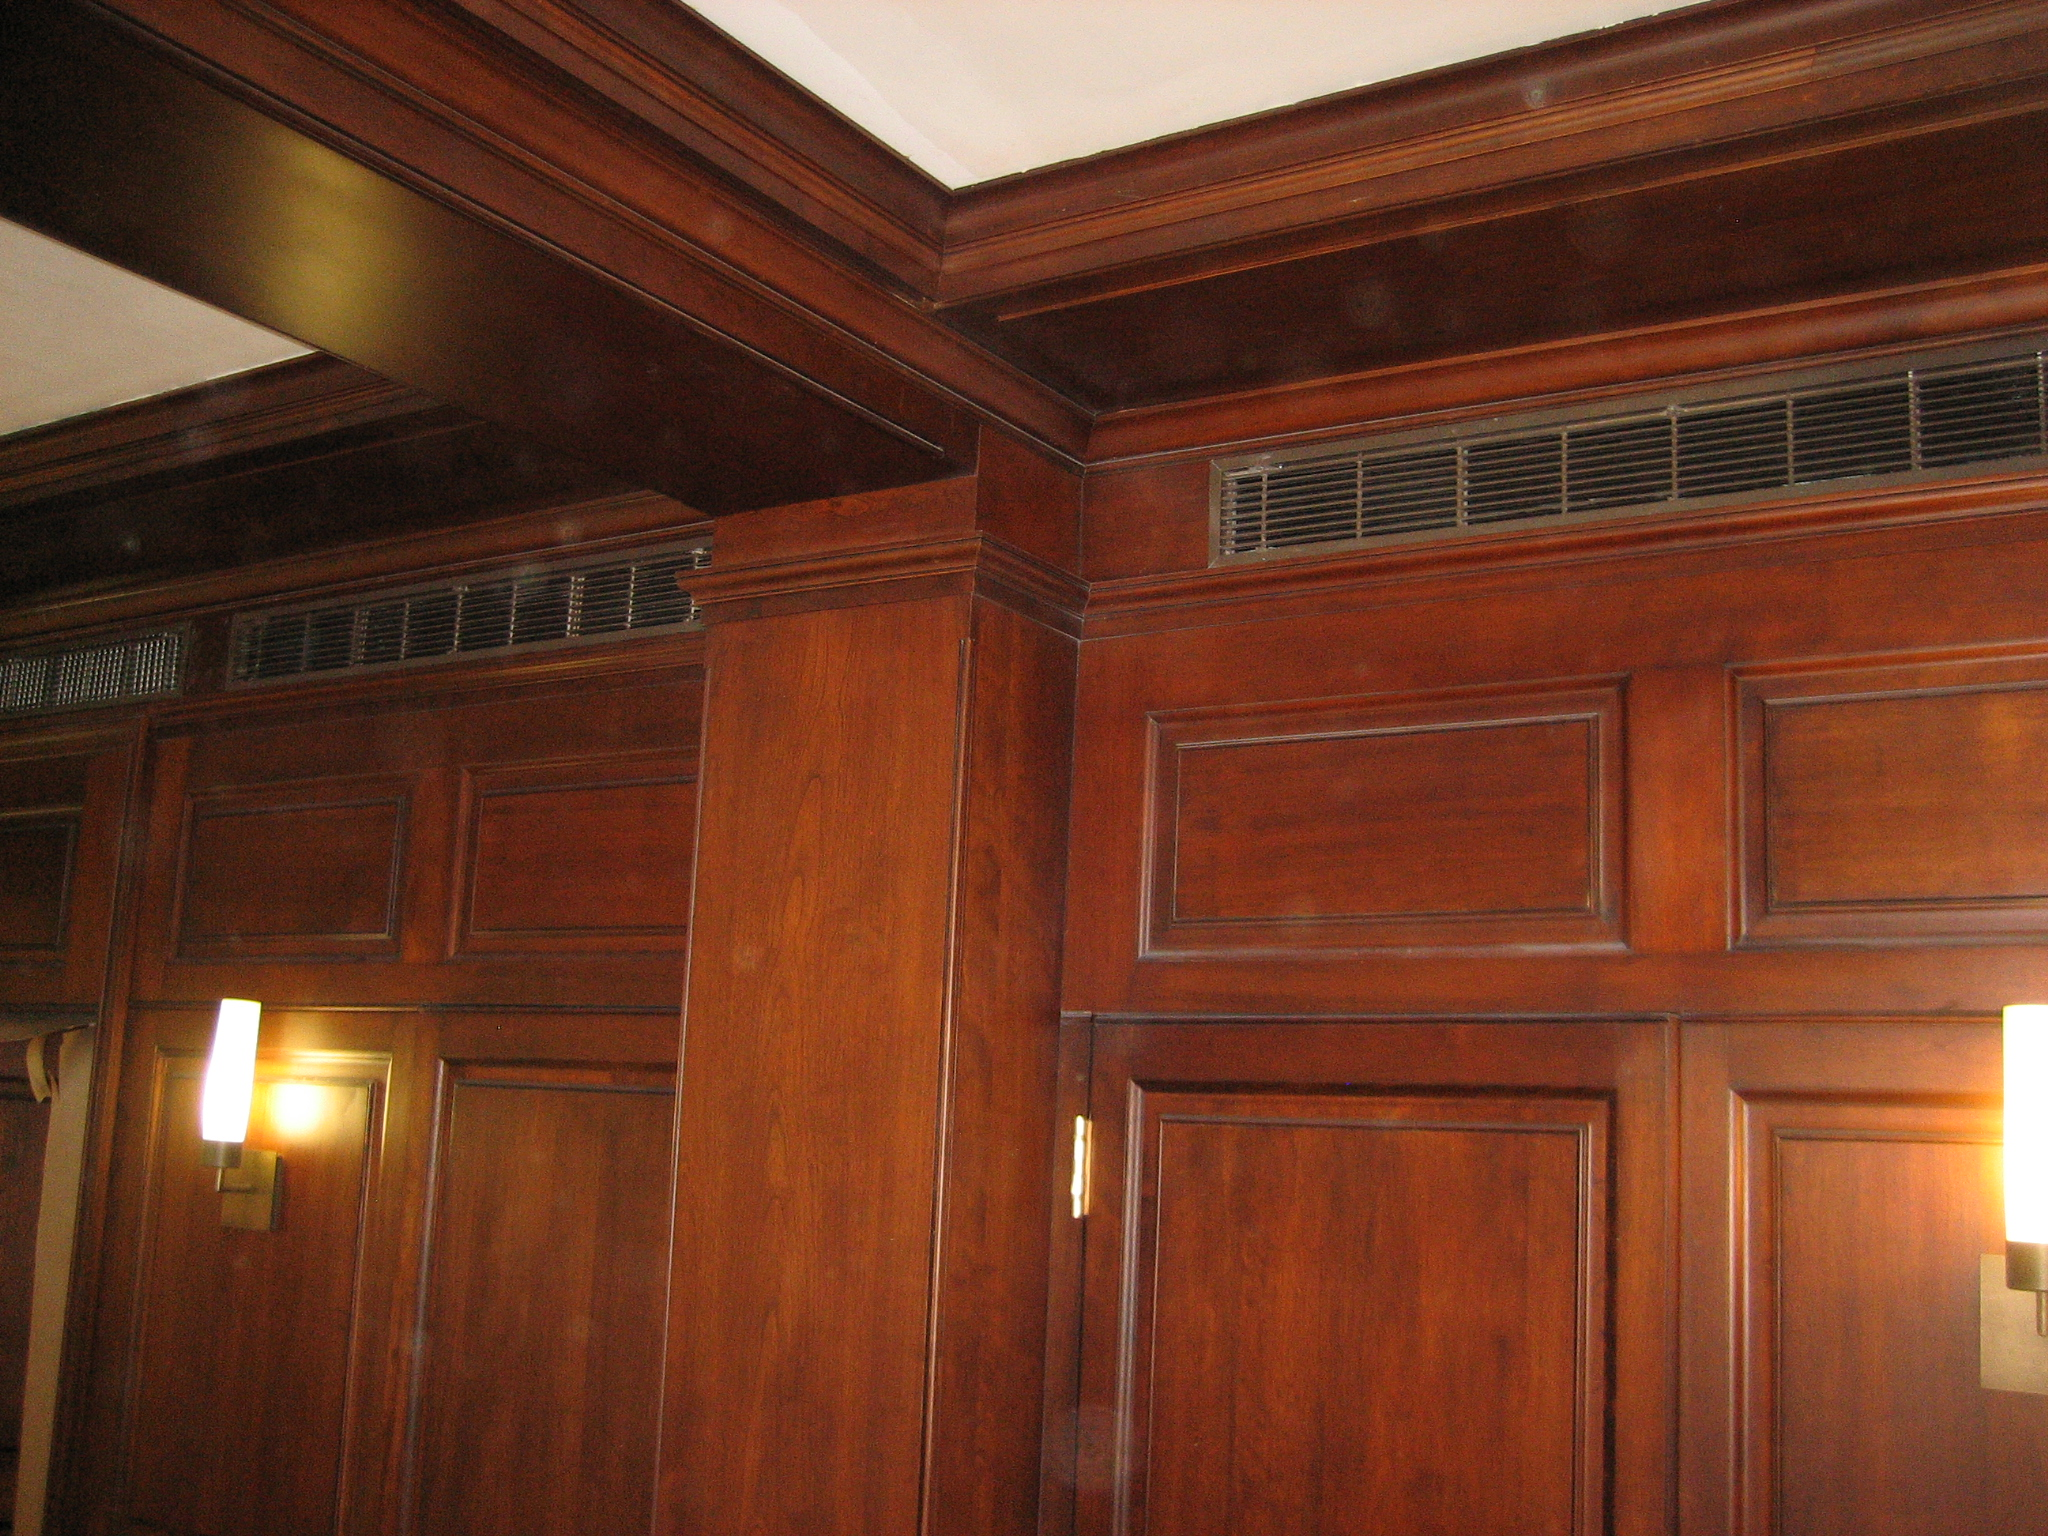 Woodwork Restoration for FDR's Library